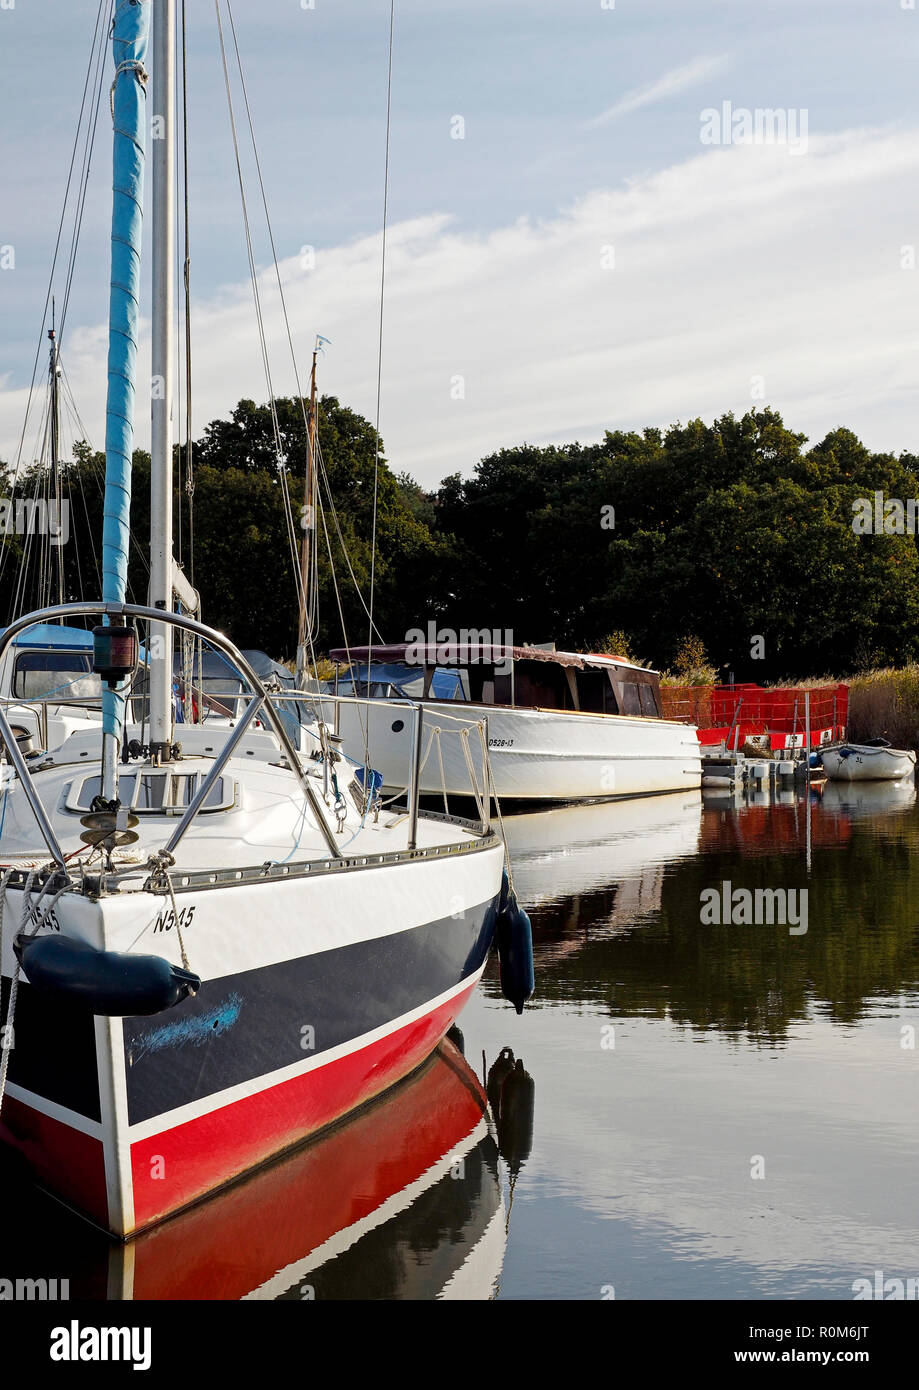 Boats on temporary moorings at Horsey Mere on the Norfolk Broads while the cut to Horsey Staithe is closed for a culvert repair. Stock Photo